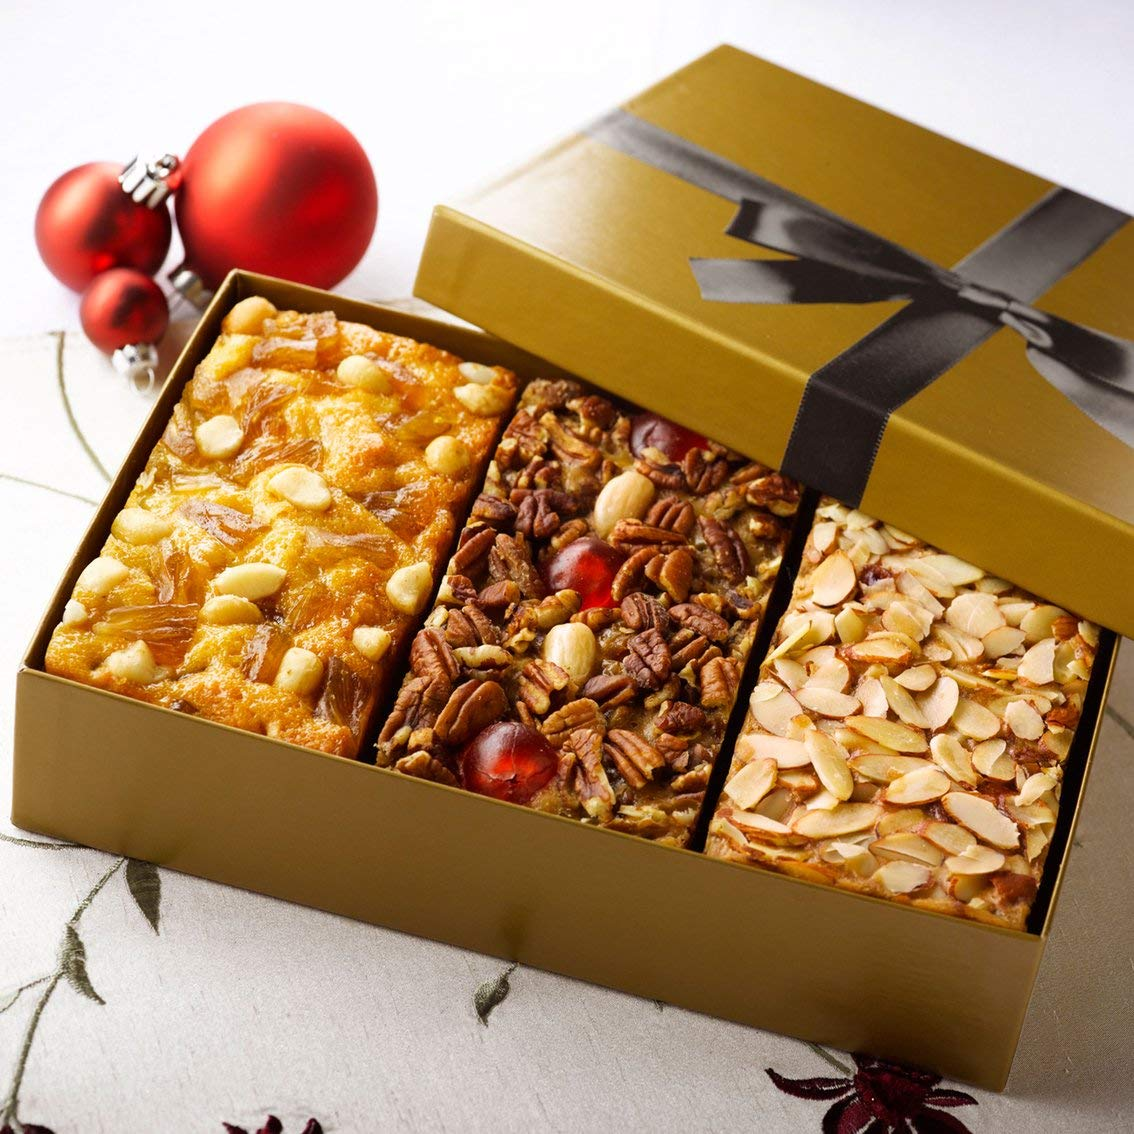 Grandma's Fruitcake Assortment Old Fashioned Traditional, Amaretto, Pineapple Macadamia Nut Flavors, 3-1 Pound Cakes in Gold Gift Box